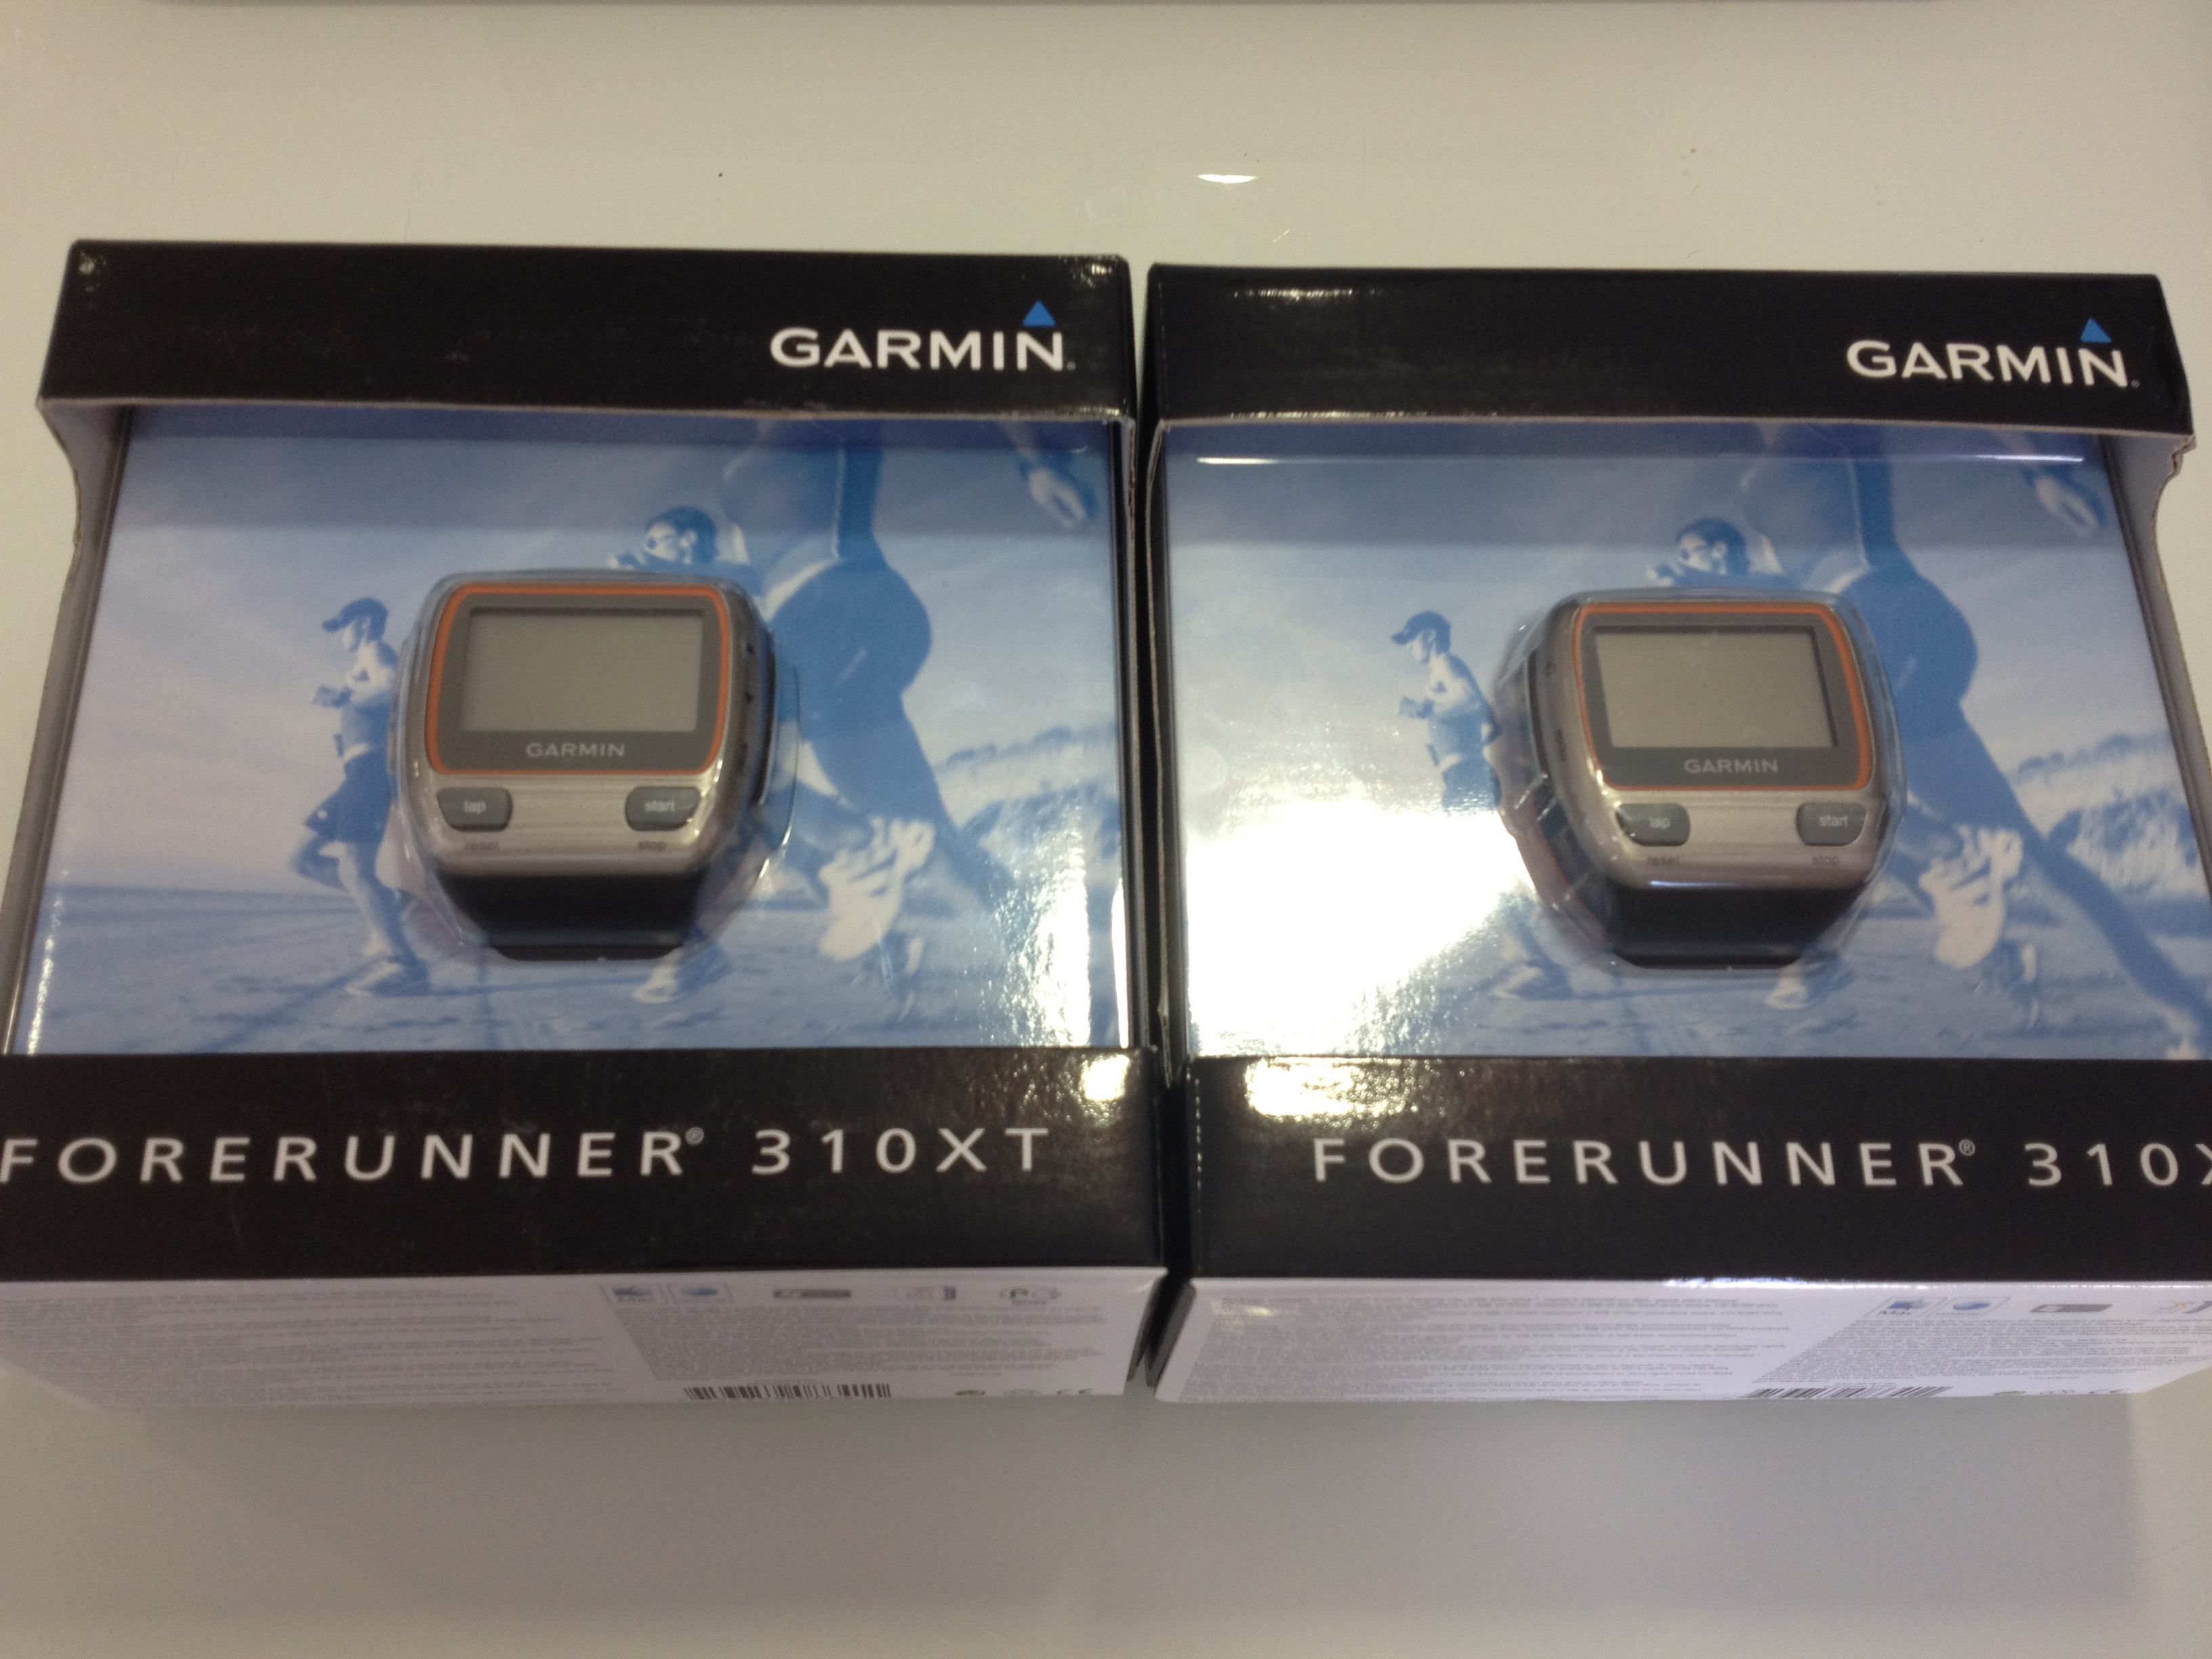 Awesome Garmin 310 xt's